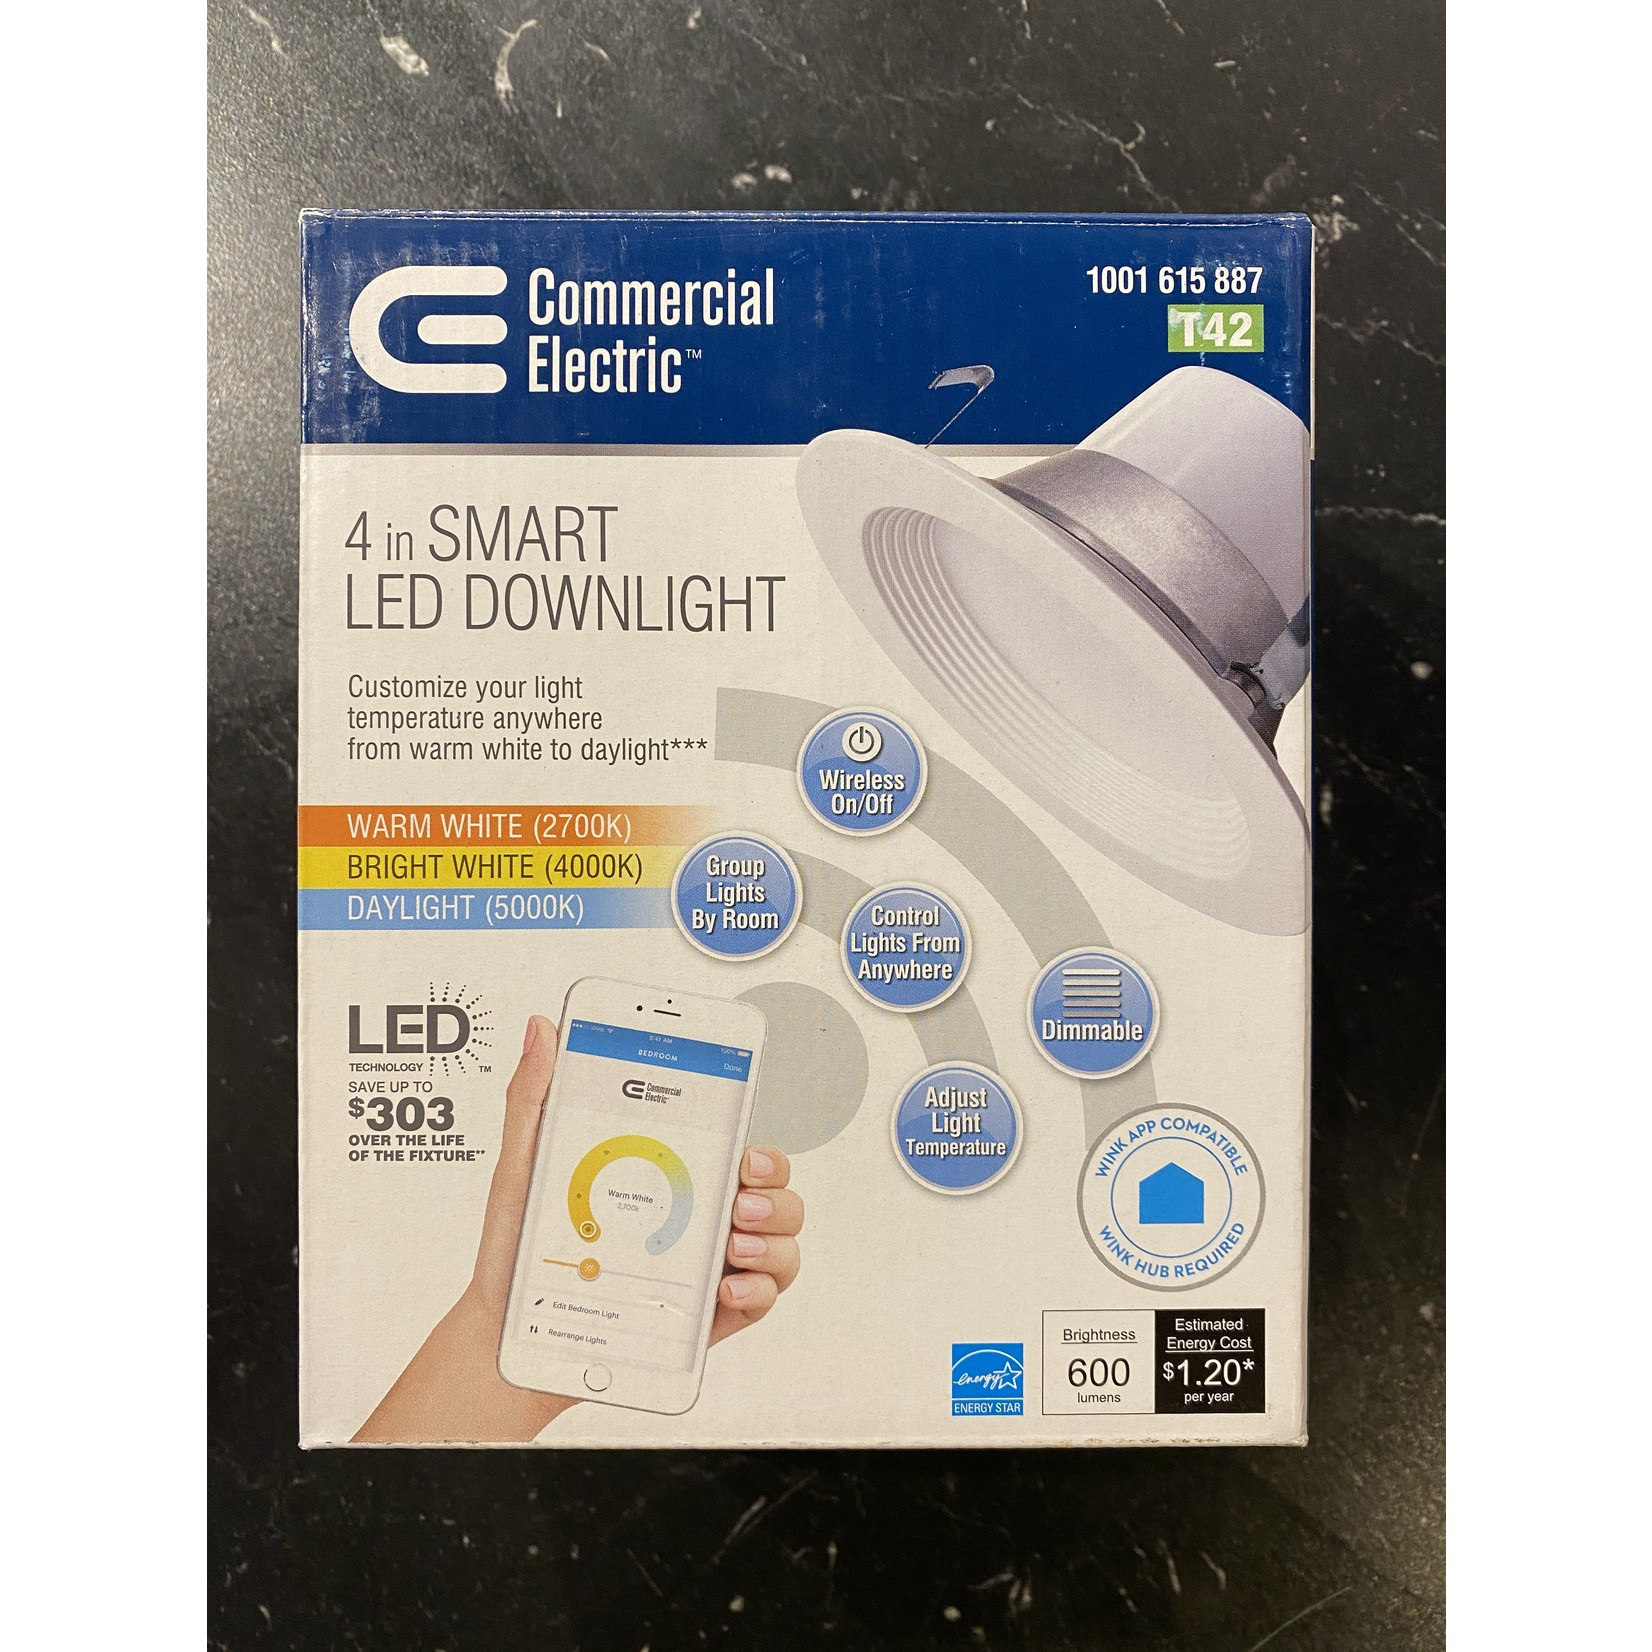 Commercial Electric 4 in Smart LED Downlight - FINAL SALE